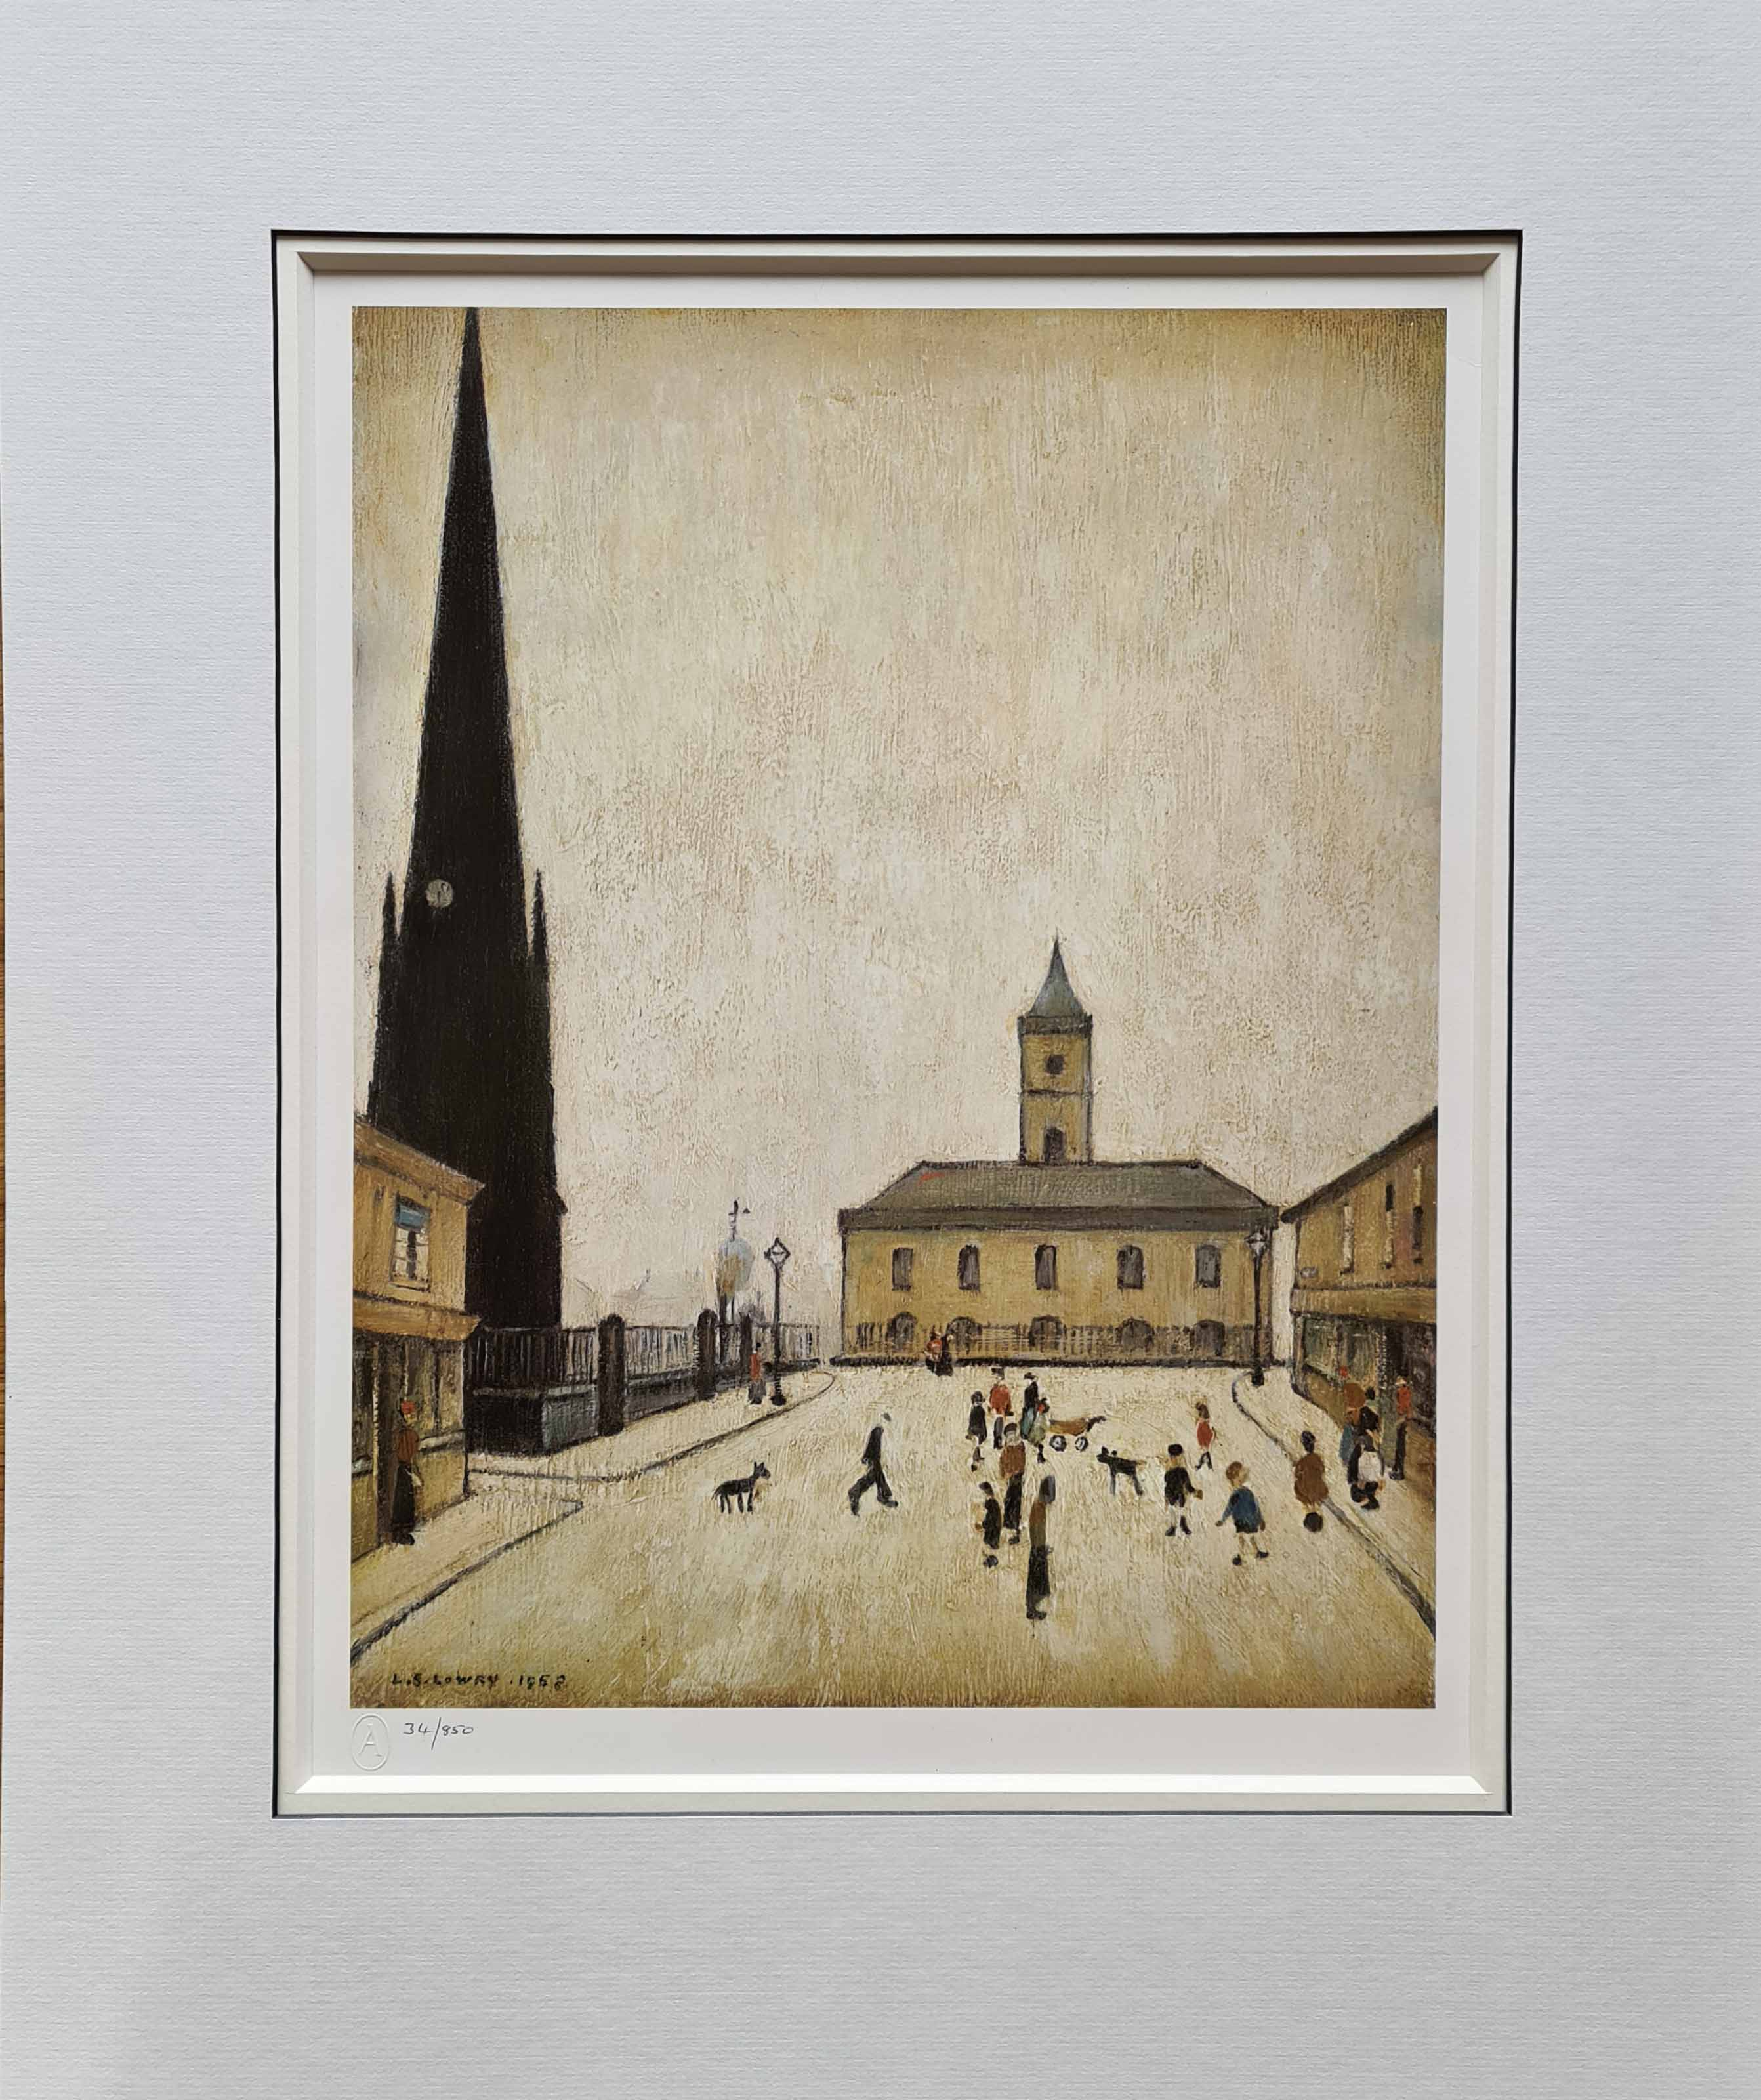 lowry, middlesbrough town hall, limited edition print